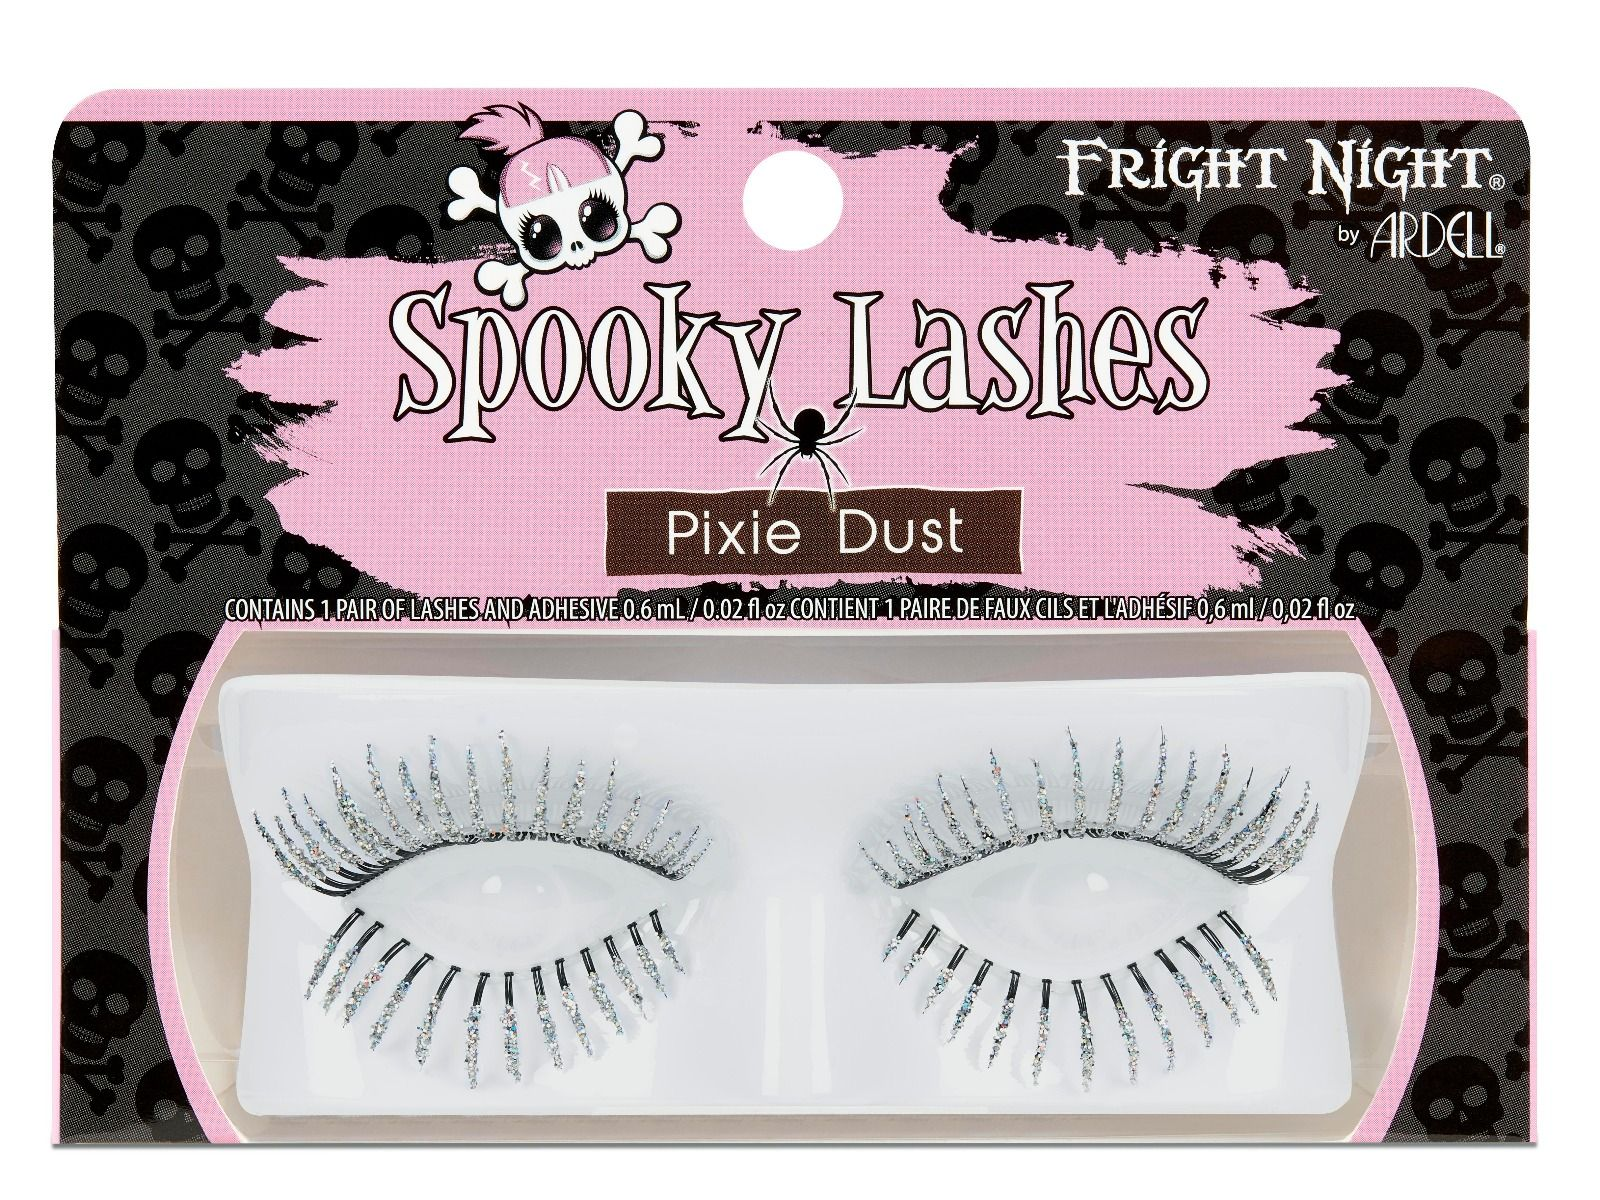 Ardell Fright Night Spooky Lashes - PIXIE DUST